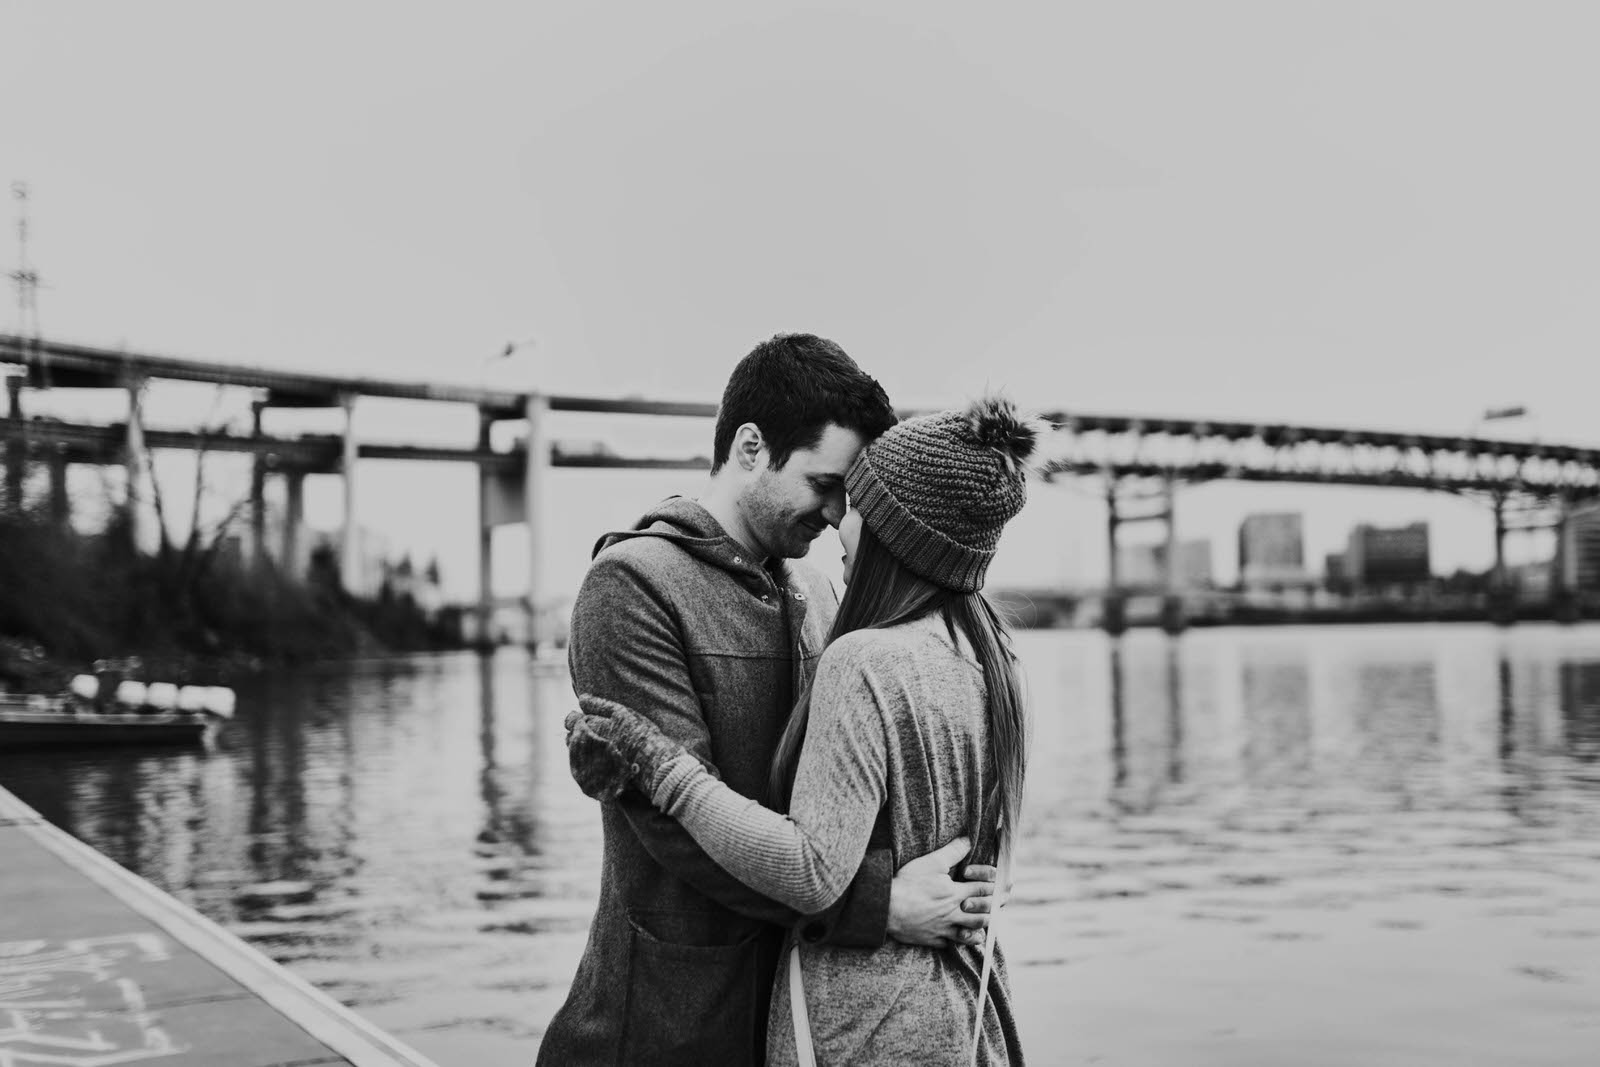 kyle and noon 90 day fiance tlc couples session portland oregon tillikum bridge crossing omsi eastback esplanade dock winter cloudy overcast reality star wedding photographer jamie carle